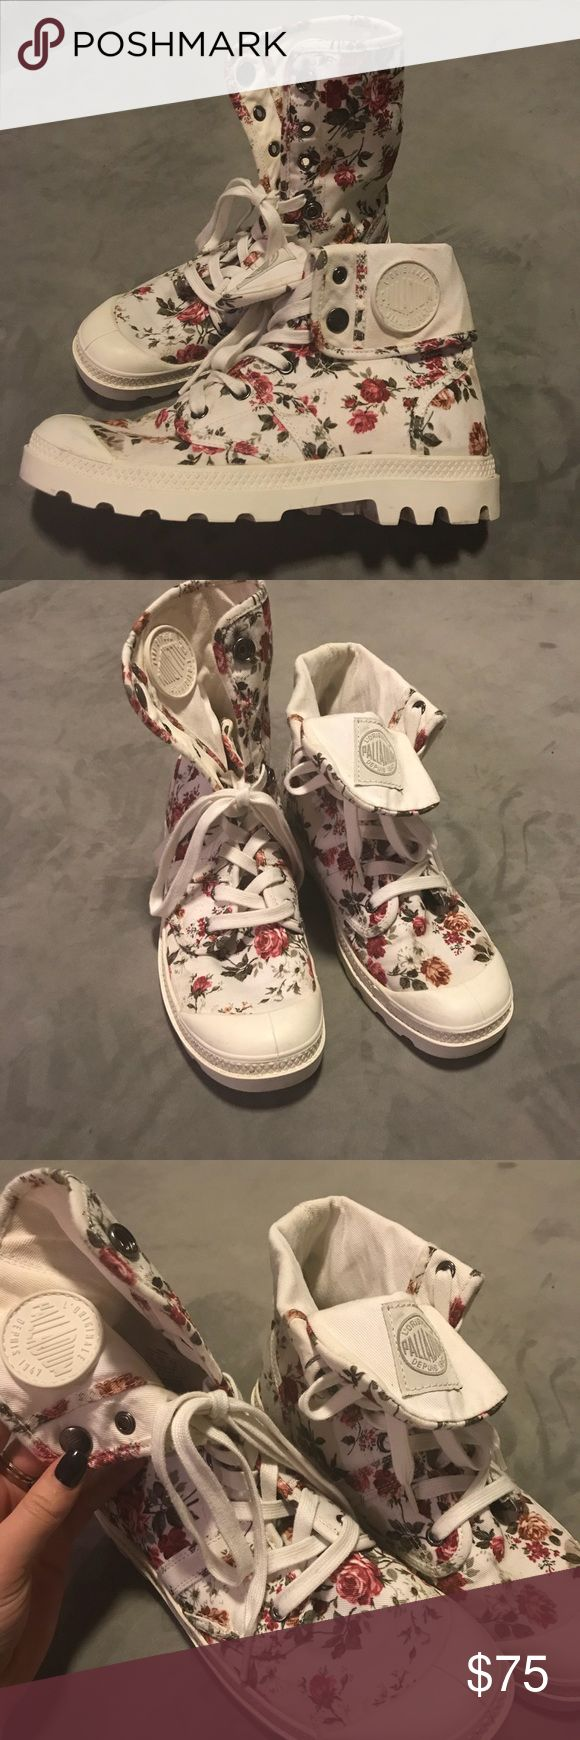 Palladium White Floral Boots Lace up white floral army boots. Originally purchased in Amsterdam! Easy to dress up or dress down! UK 5.5, USA 7.5, EUR 39. Palladium Shoes